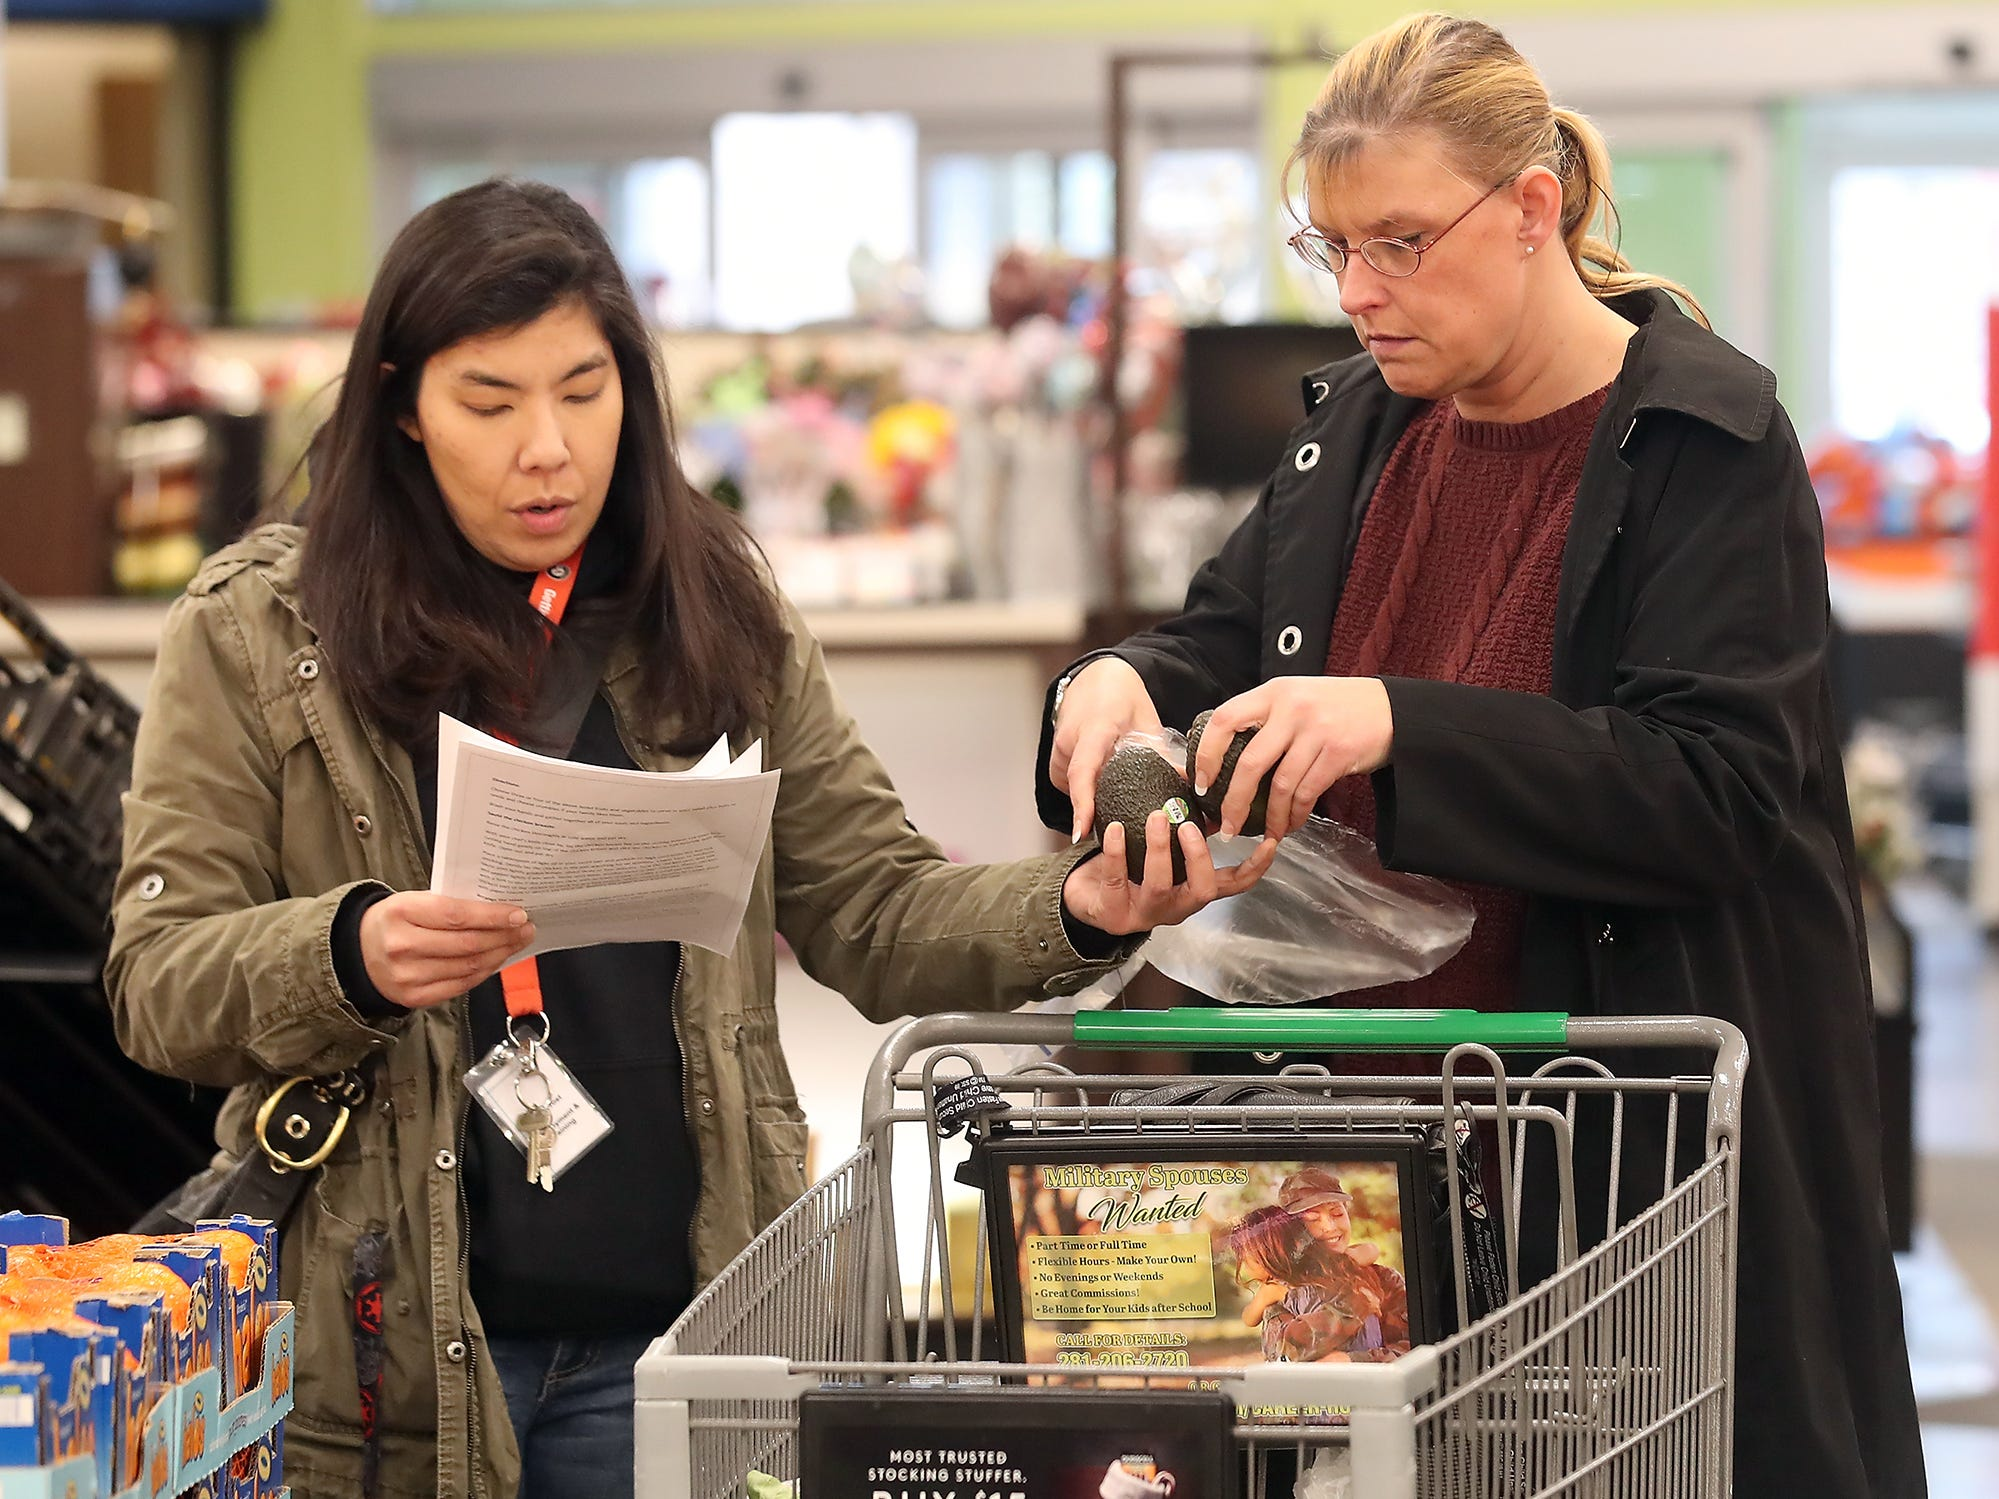 AmeriCorps Life Skills Facilitator Shin Frost (left) hands Brandy Mathews two avocados as they check off the items for salad and homemade chicken noodle soup at Fred Meyer in Bremerton on Wednesday, February 20, 2019.